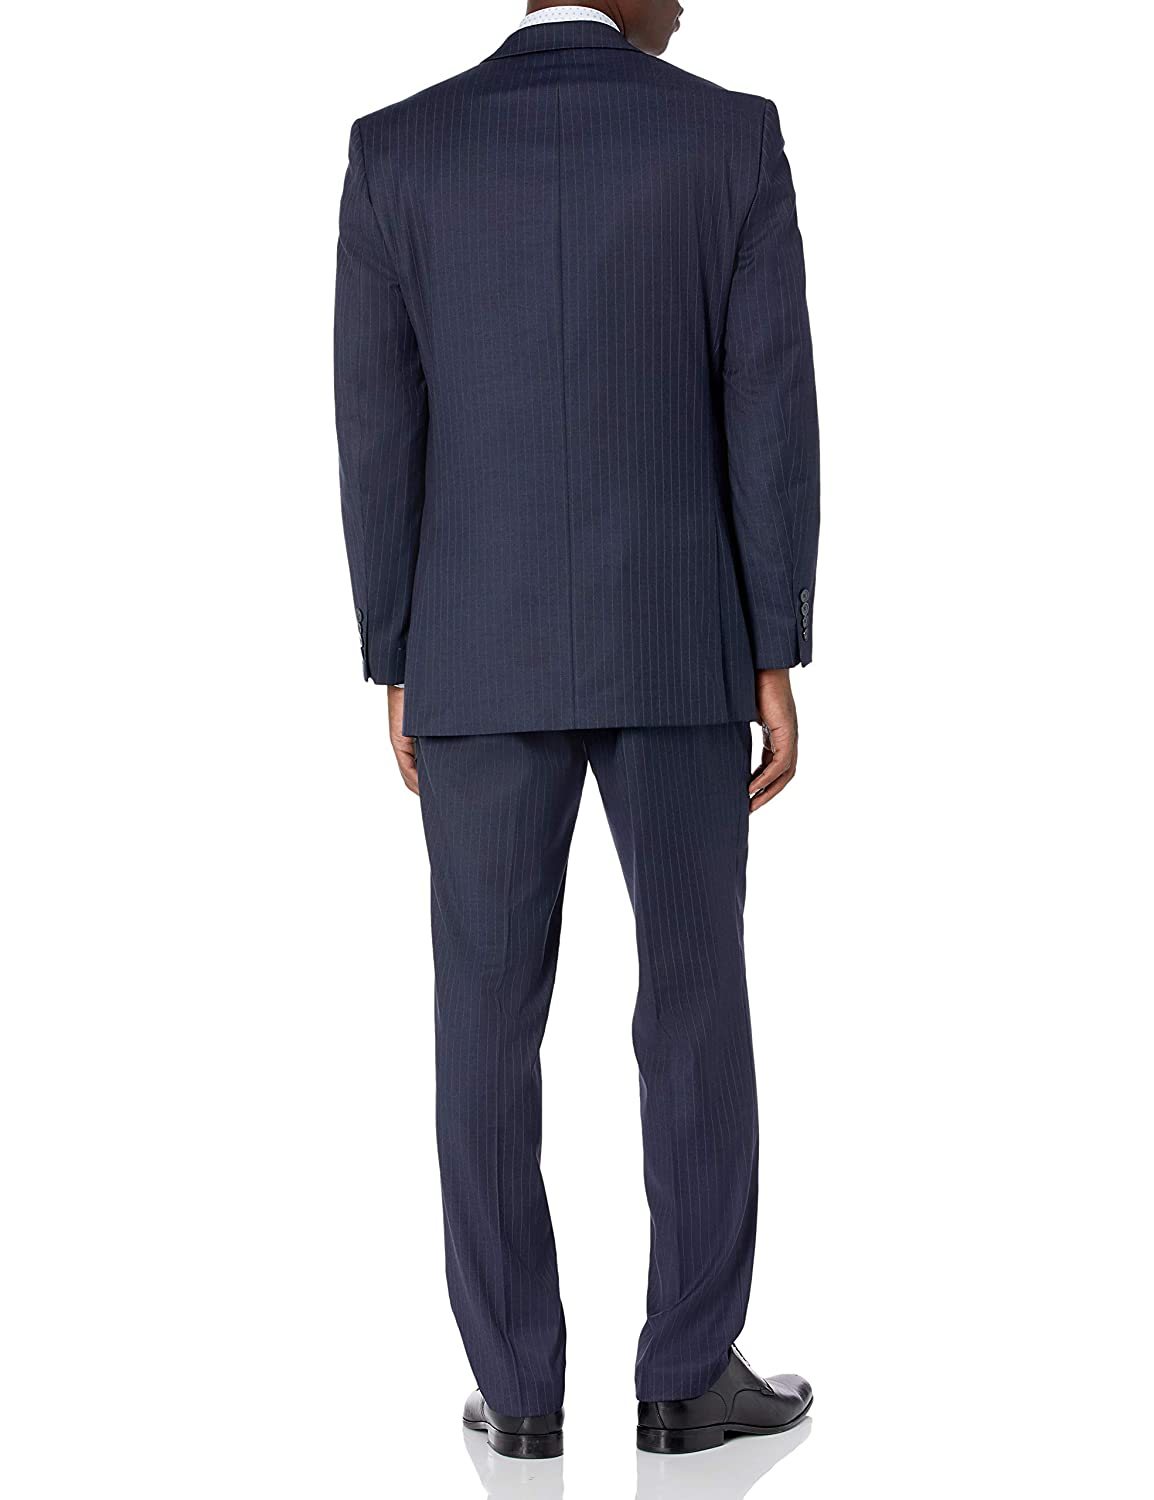 HIGH QUALITY Jacket /& Pants Size 48 to 70 $199 Men/'s Big /& Tall Suit